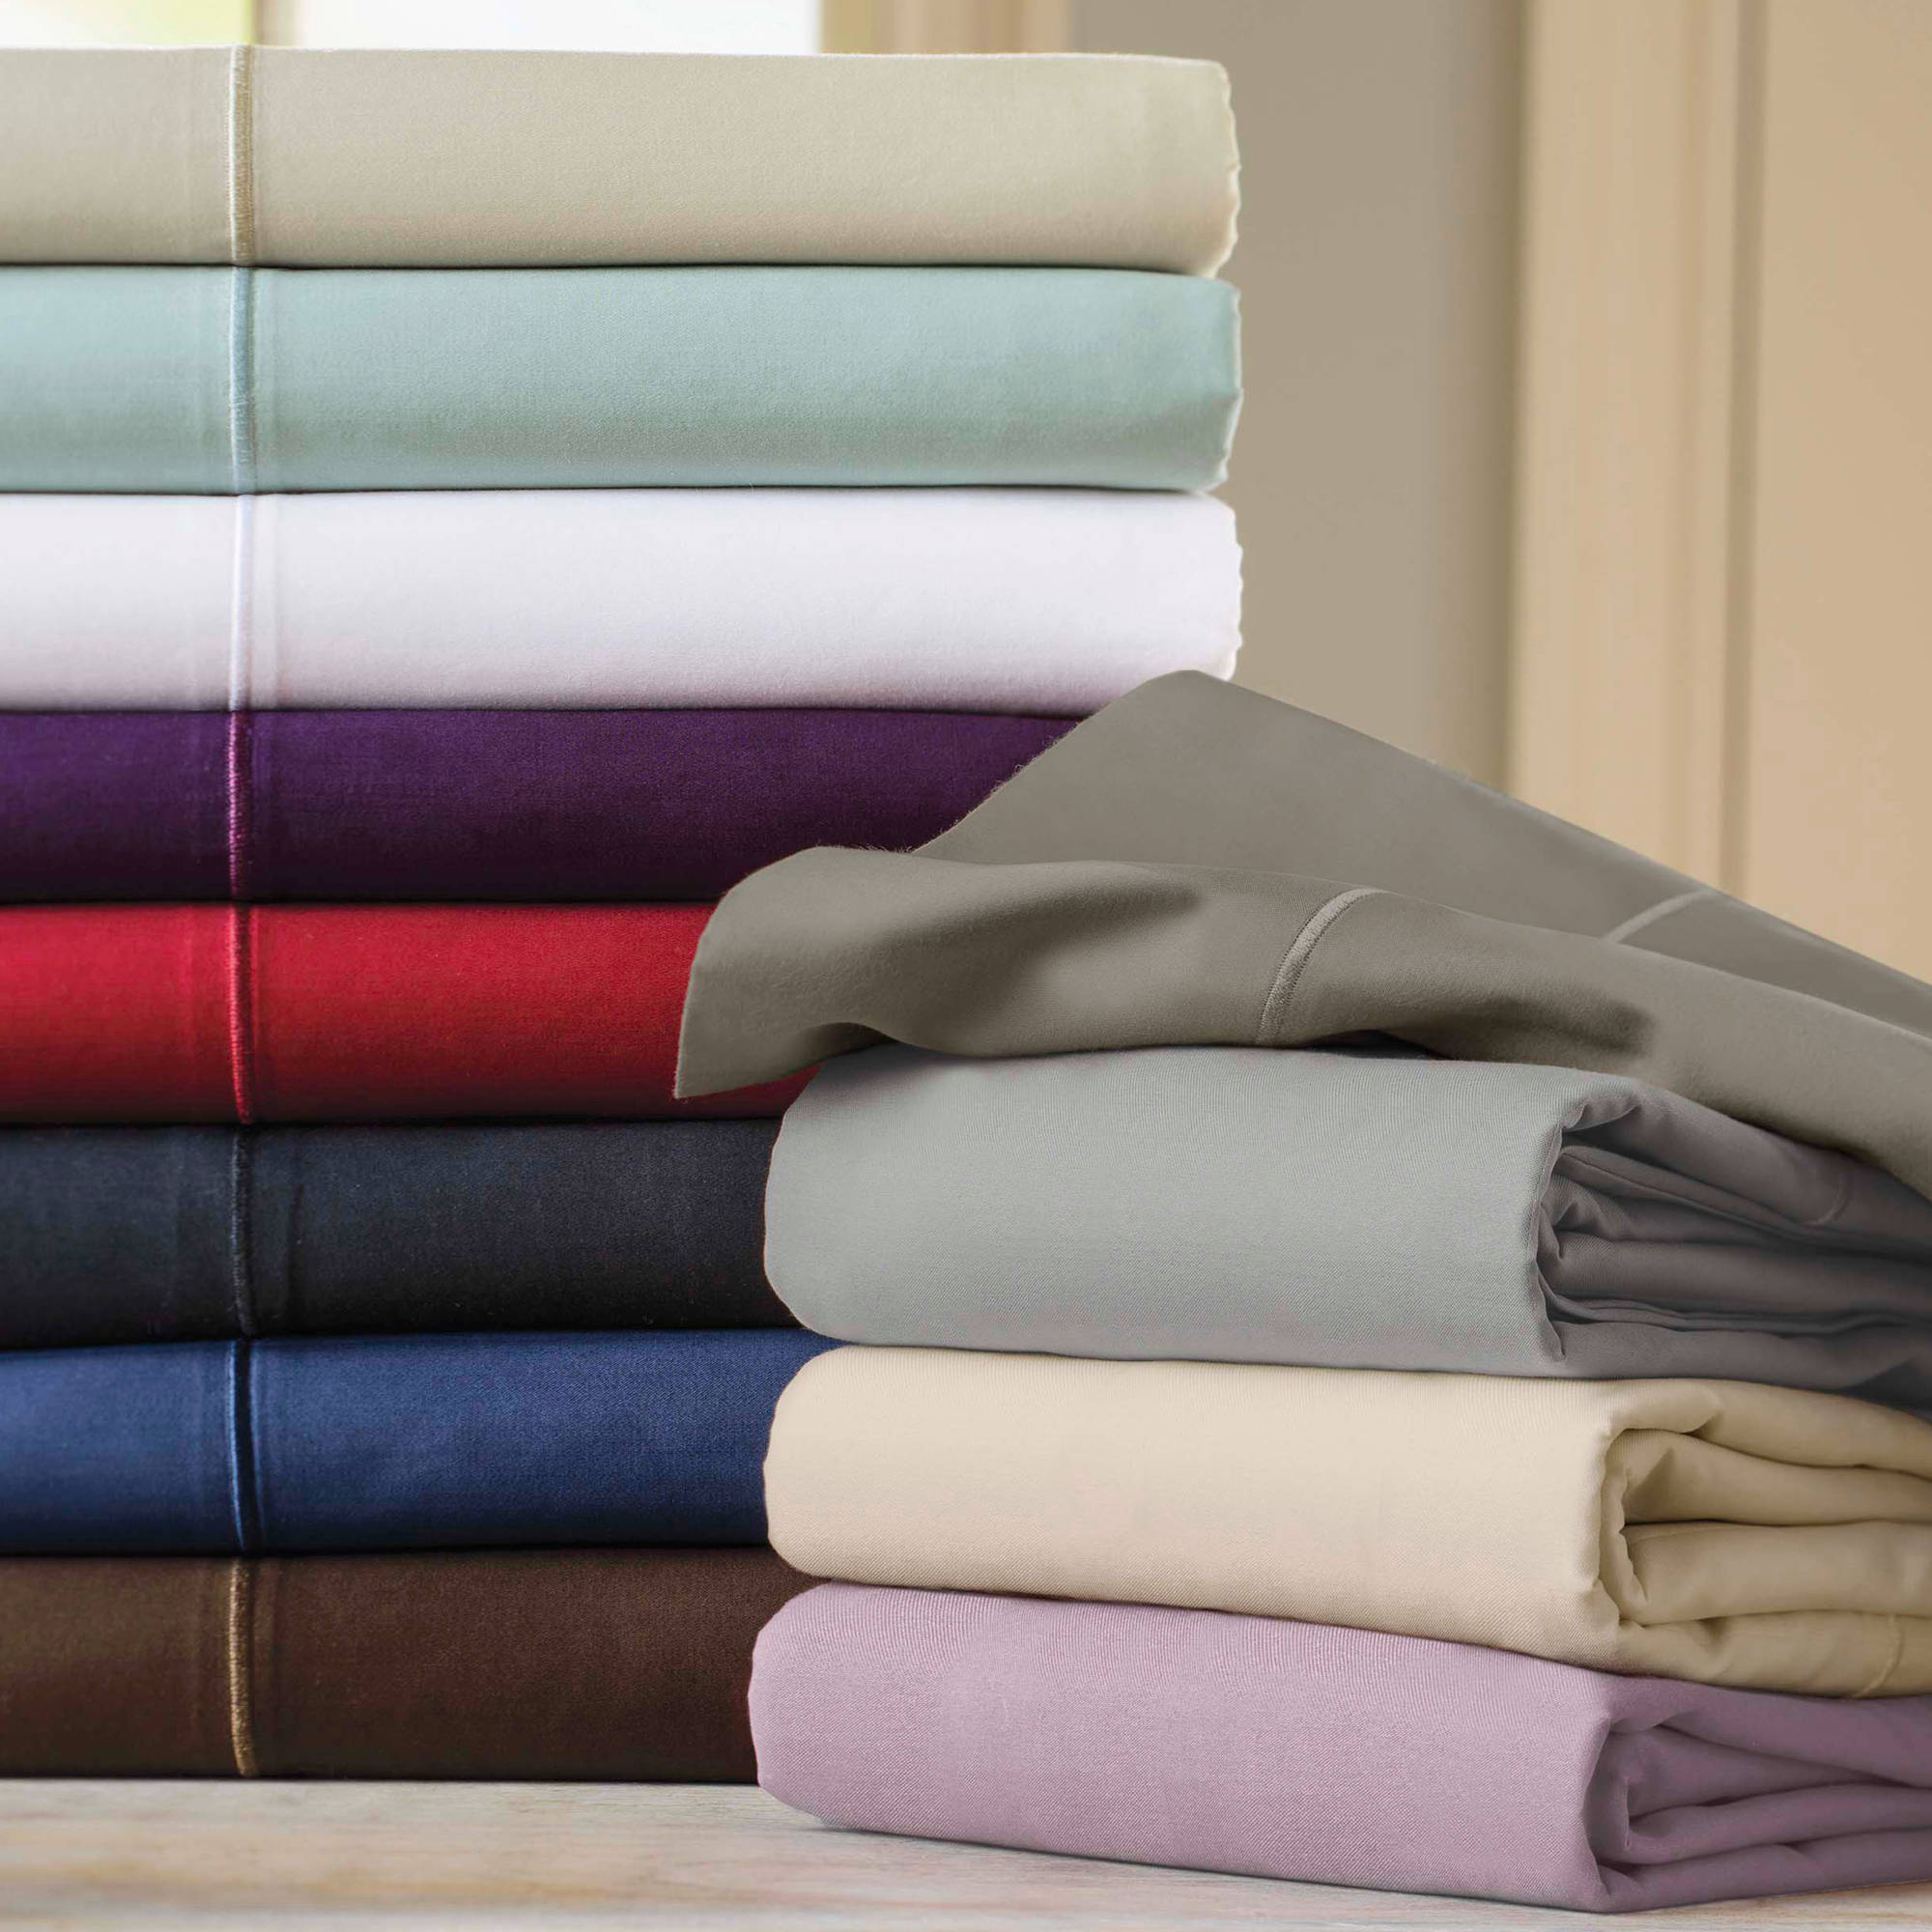 Better Homes and Gardens 400 Thread Count Egyptian Cotton